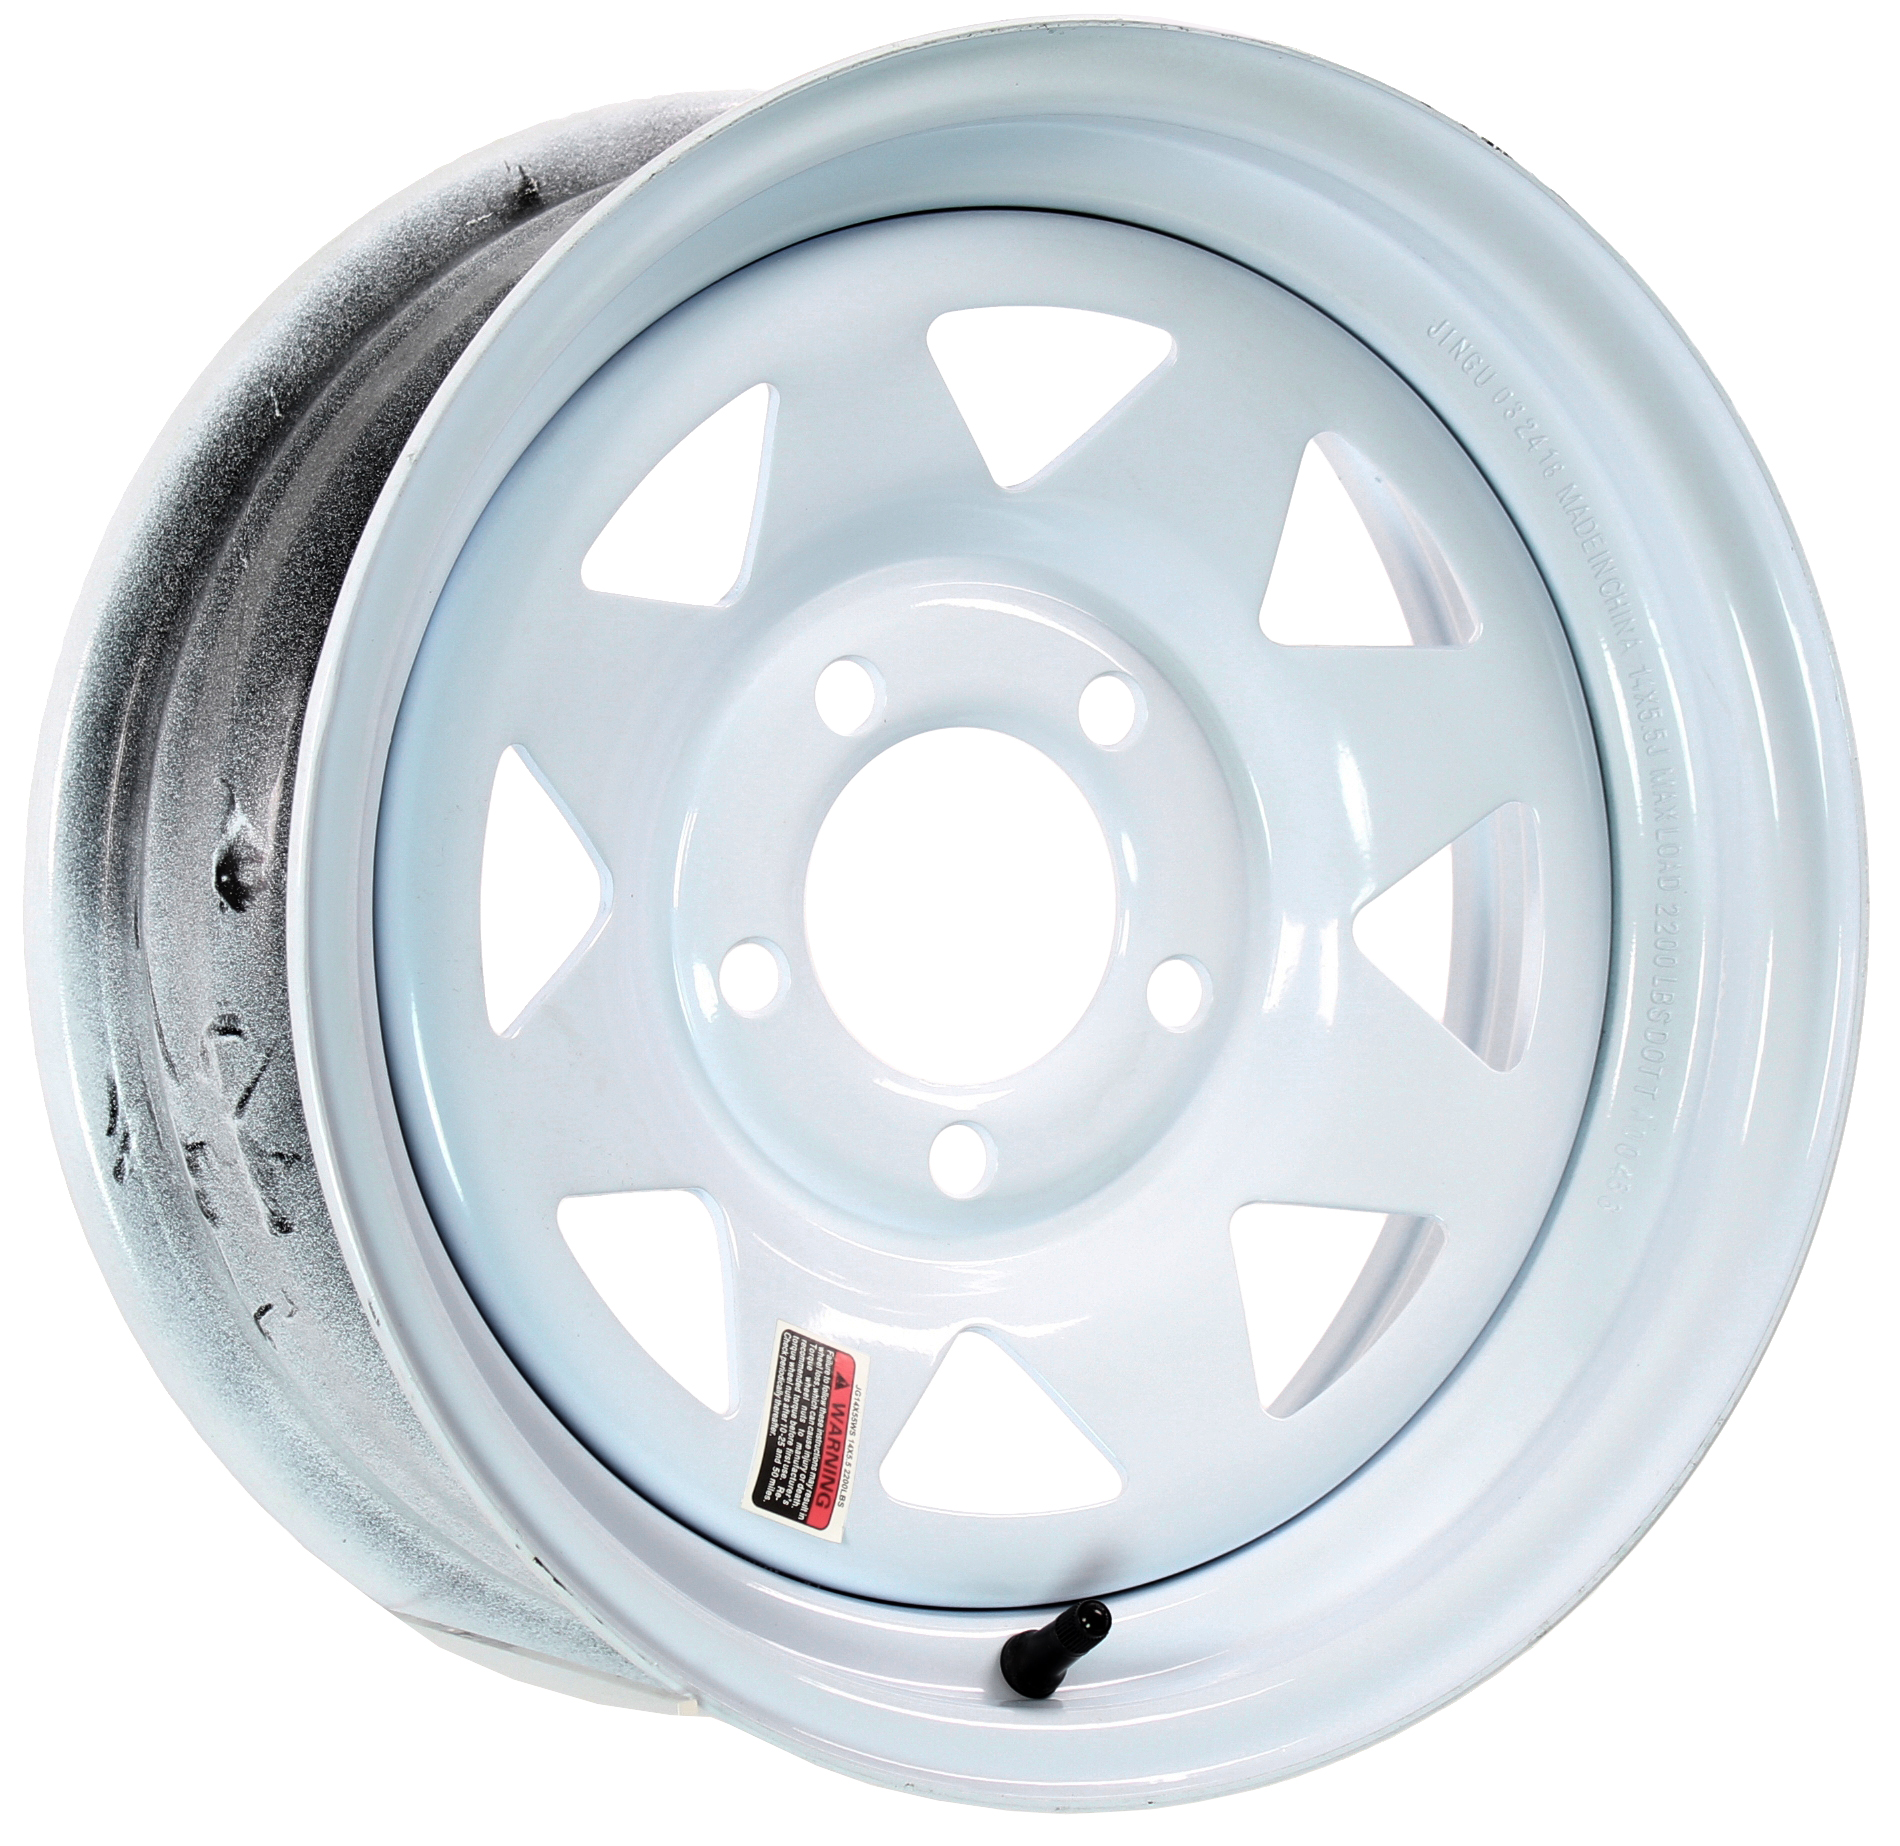 14x5.5 5-Lug White Spoke Steel Trailer Wheel Image